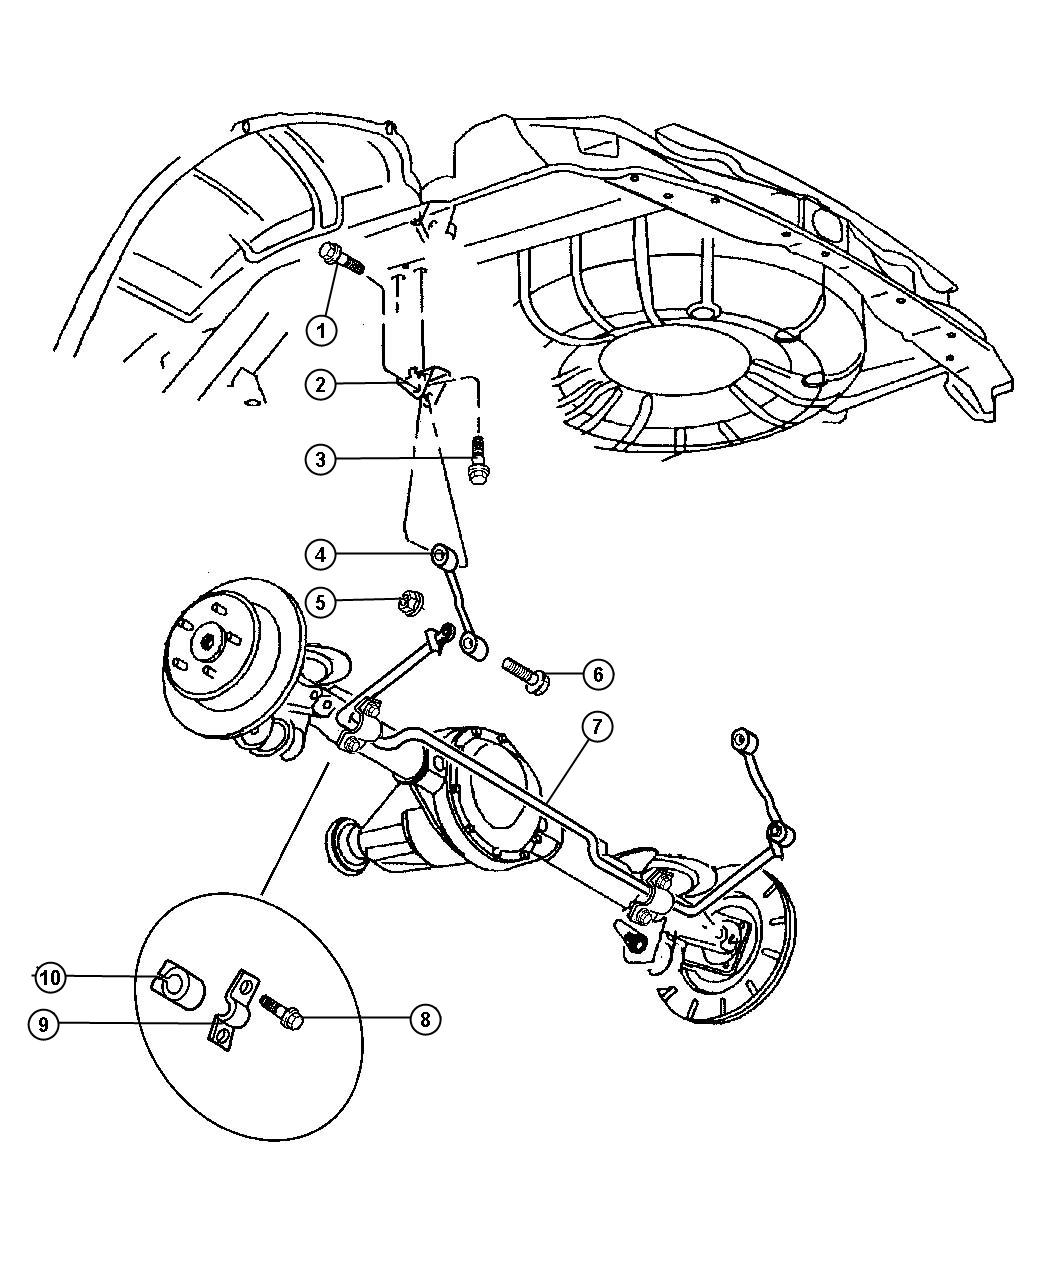 Dodge Dakota Used For Bolt And Washer Used For